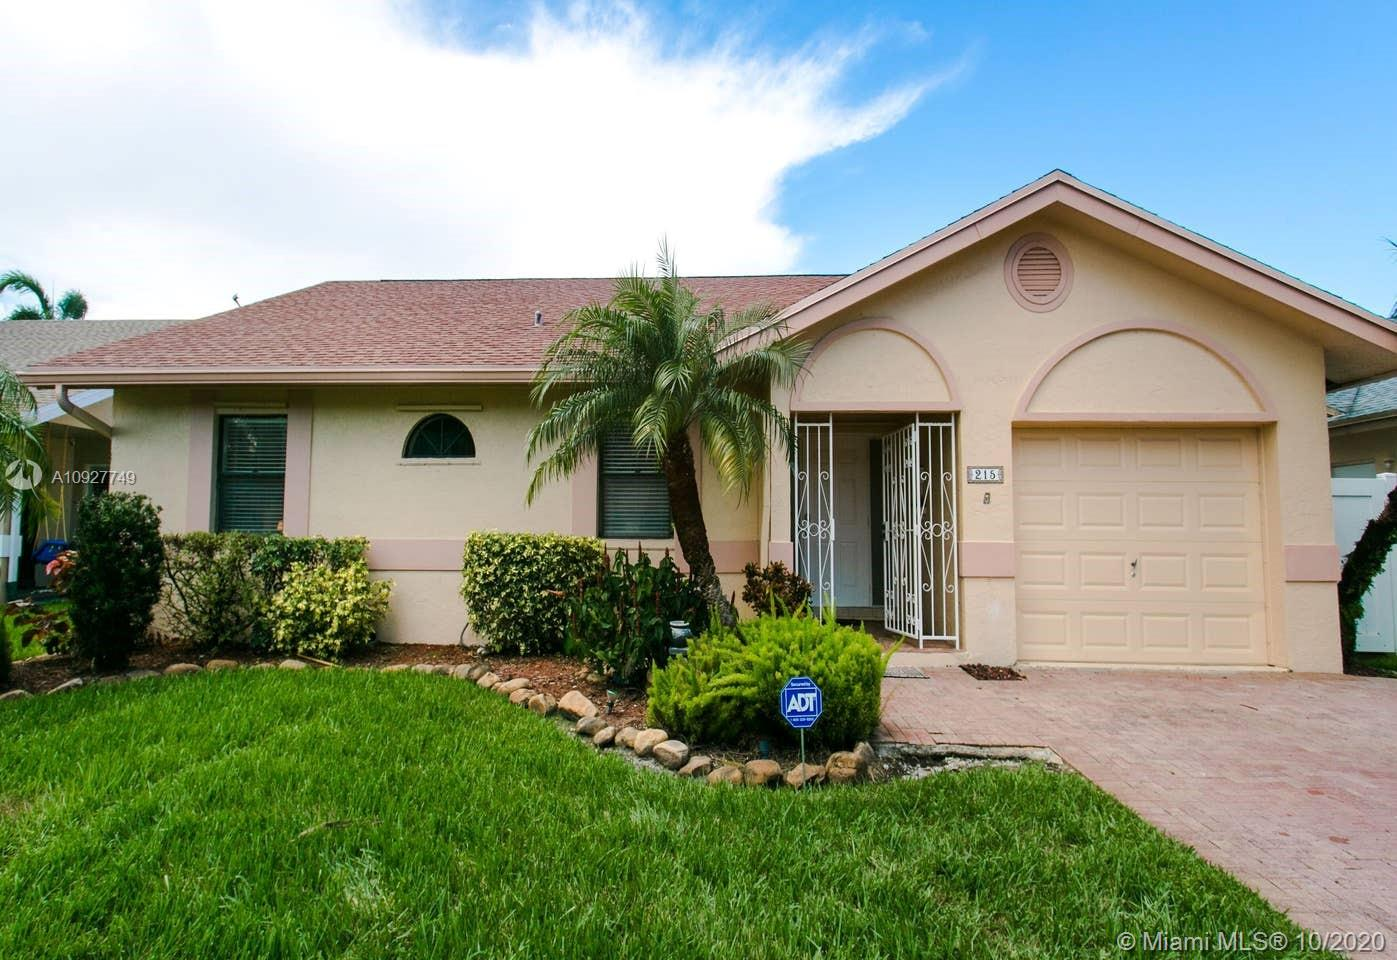 Built in 1988, this 4 bedroom 2 bath pool home in upcoming Dania Beach Florida is offered at $549k. Features include: over 1900  total  square  feet living space with  garage, driveway, professionally landscaped back yard, hurricane shutters, updated plumbing and electrical, renovated bathrooms and kitchen, heated pool and  more...